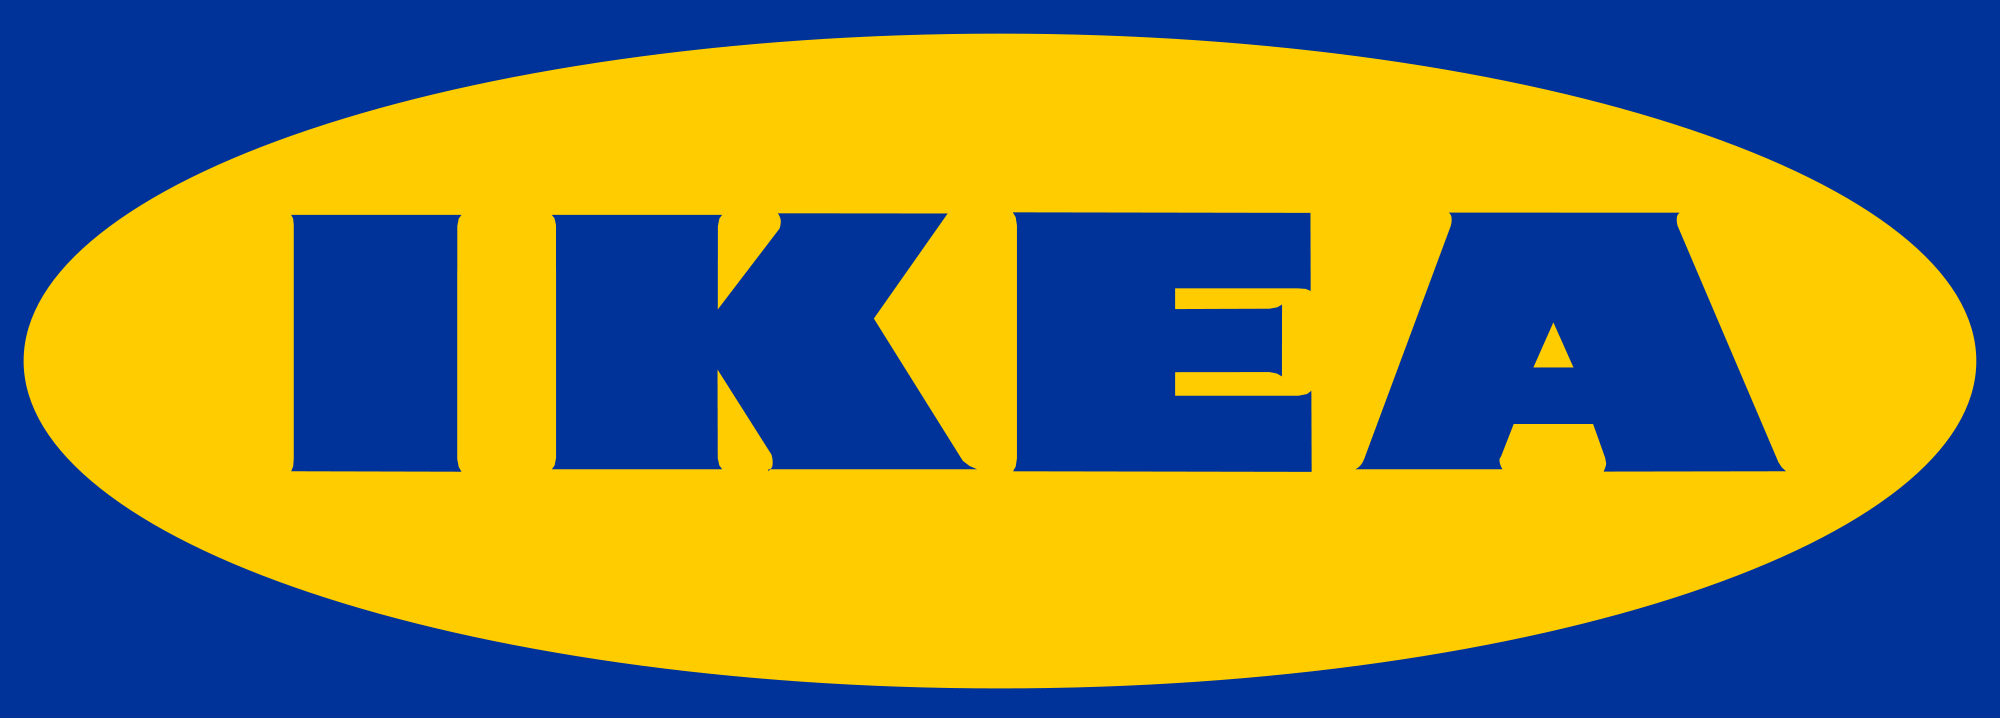 13. IKEA Group